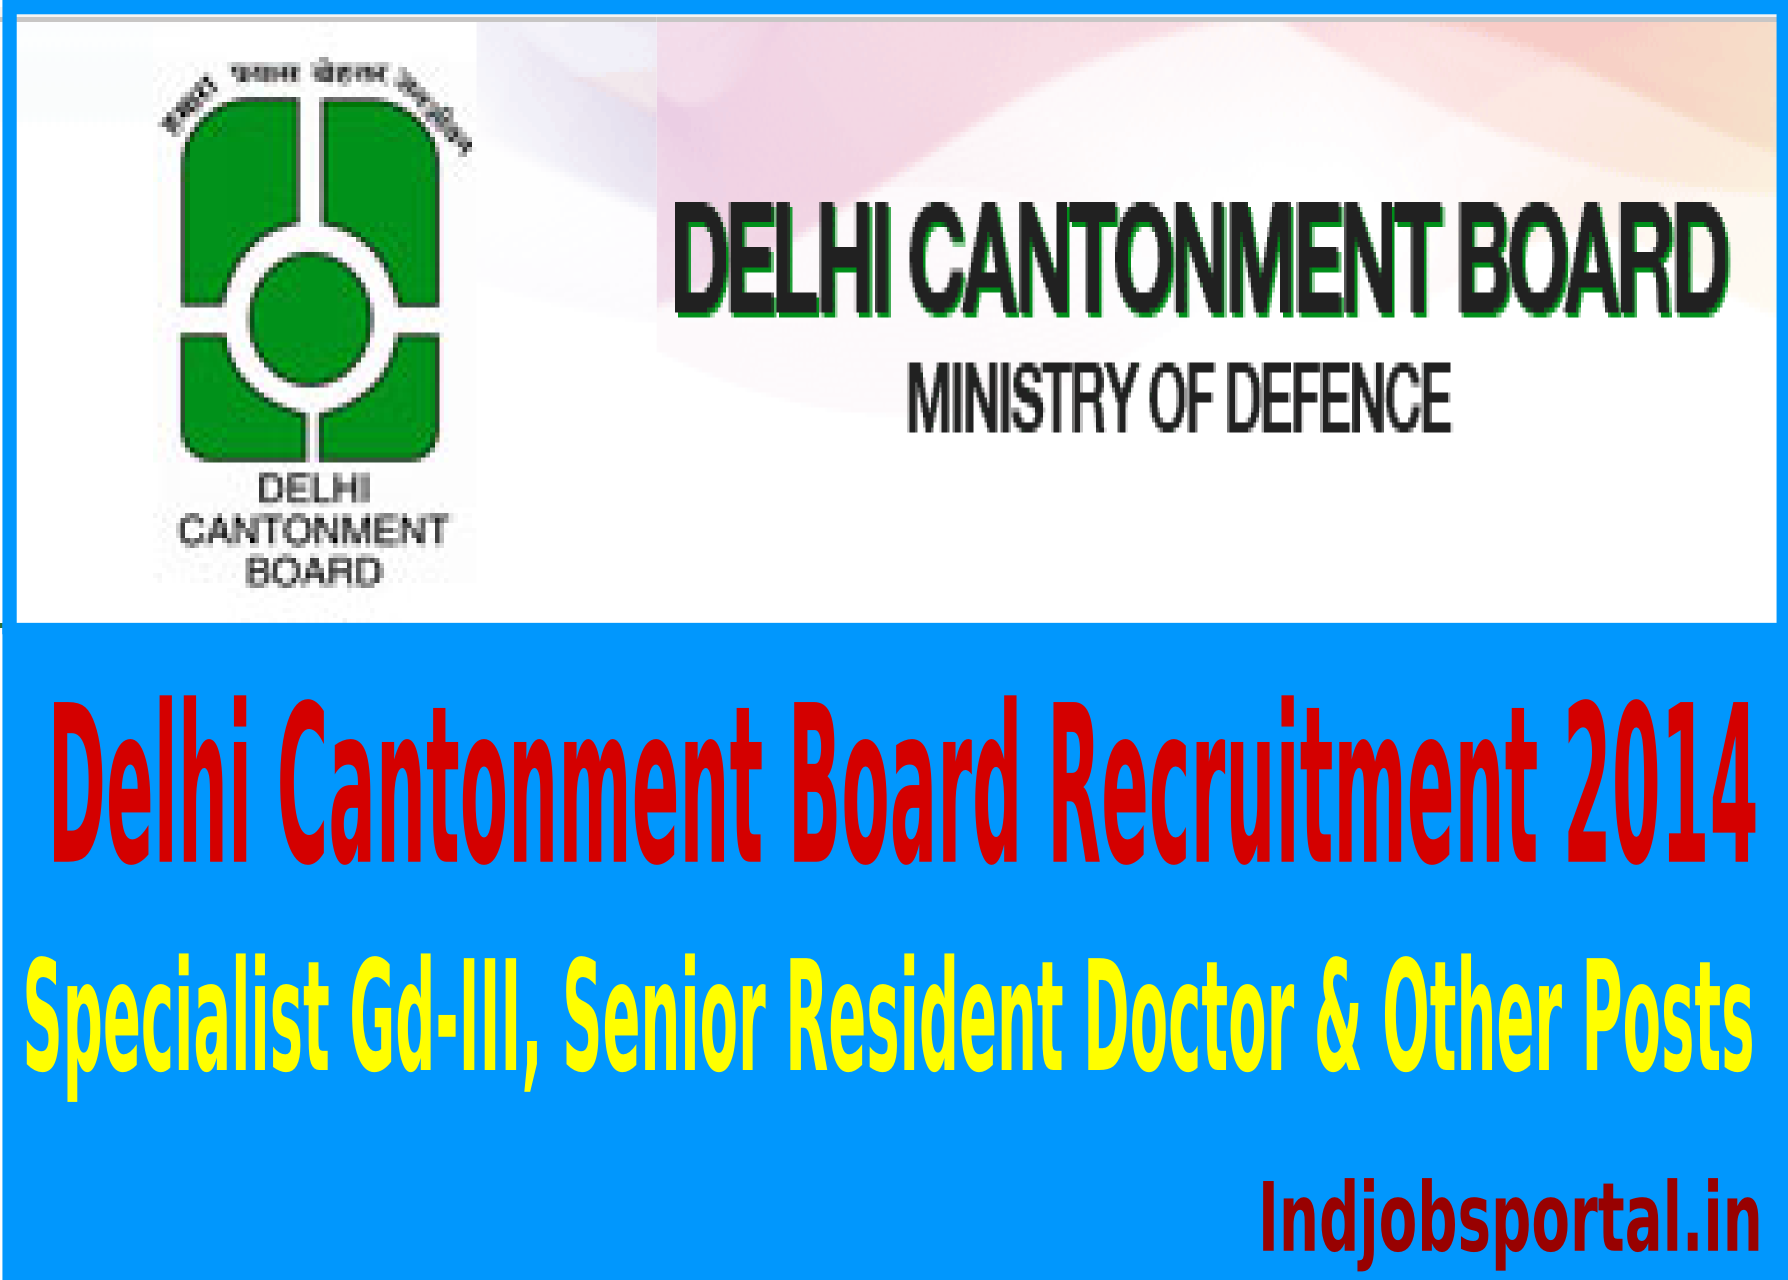 Delhi Cantonment Board Recruitment 2014 For Specialist Gd-III, Senior Resident Doctor & Other Posts